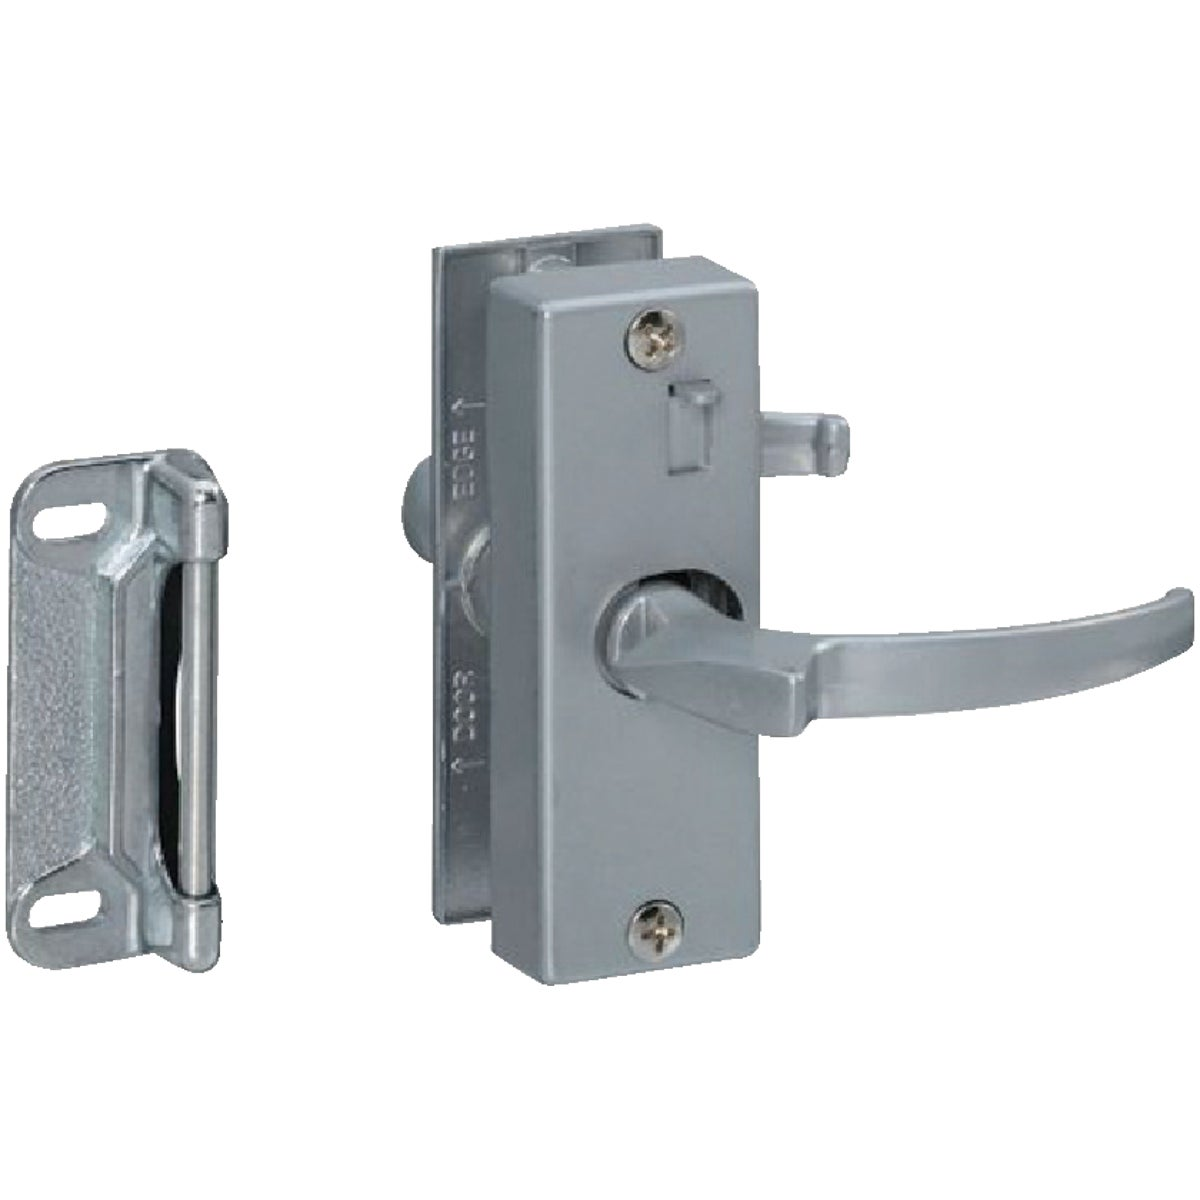 ALUM PUSH/PULL LATCH - V1000 by Hampton Prod Intl